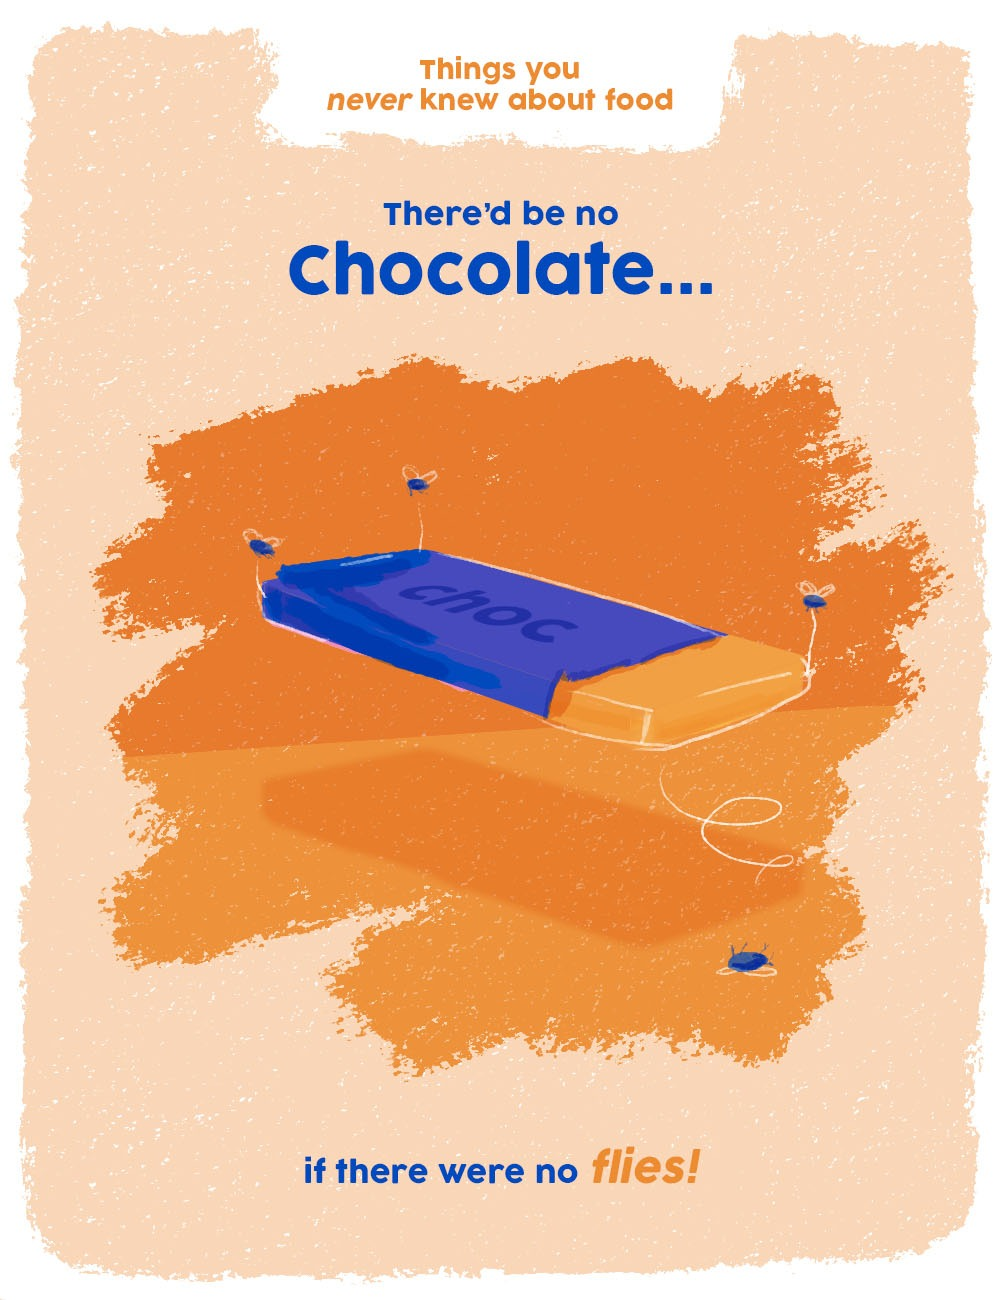 things you never knew about food graphics - flies make chocolate